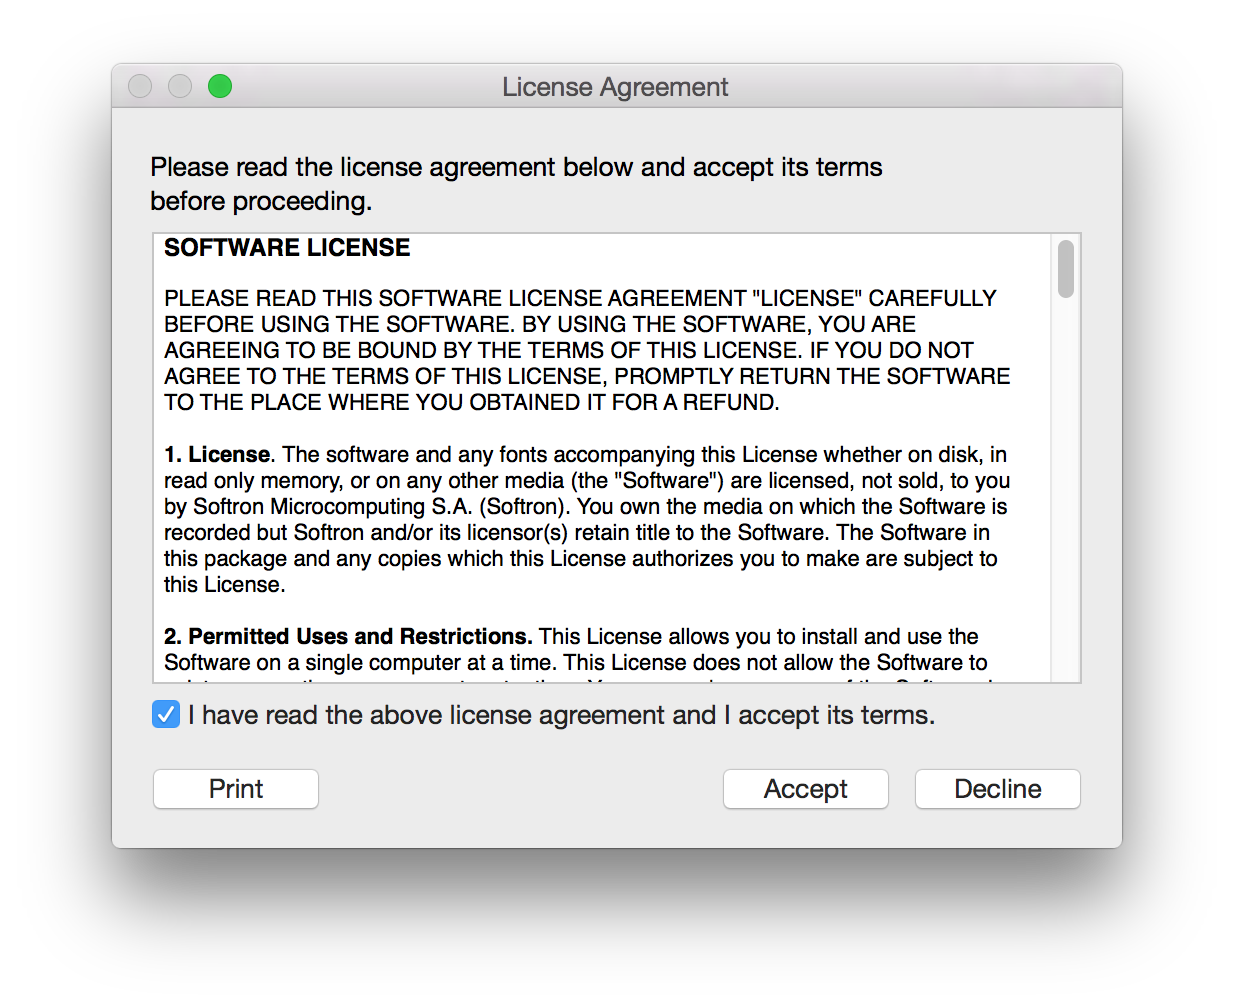 License_Agreement_Accept.png